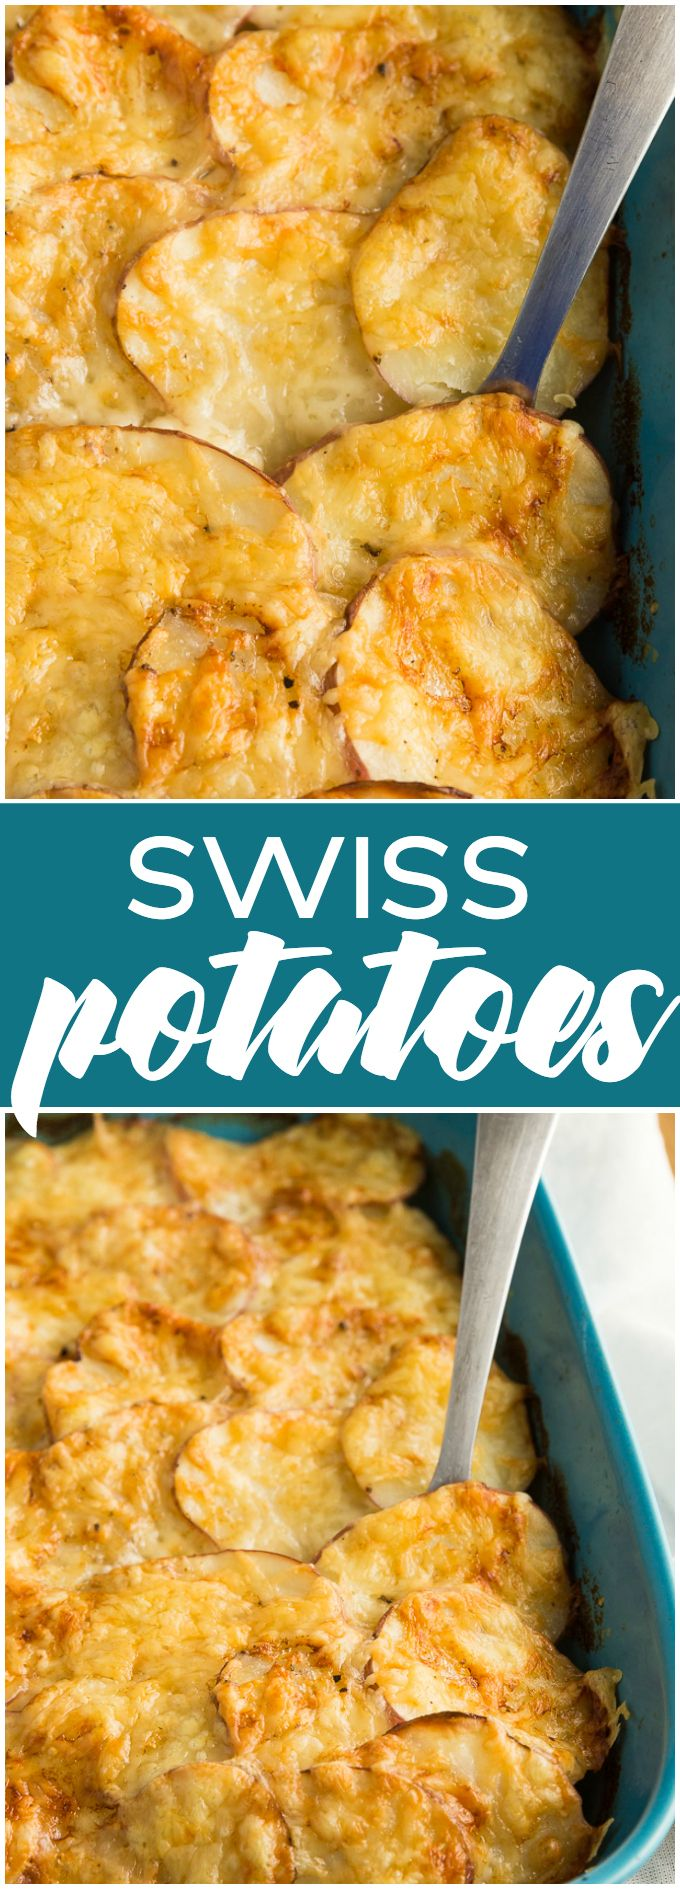 Swiss Potatoes - Layers of sliced potatoes and Swiss cheese make this easy side dish a winner!